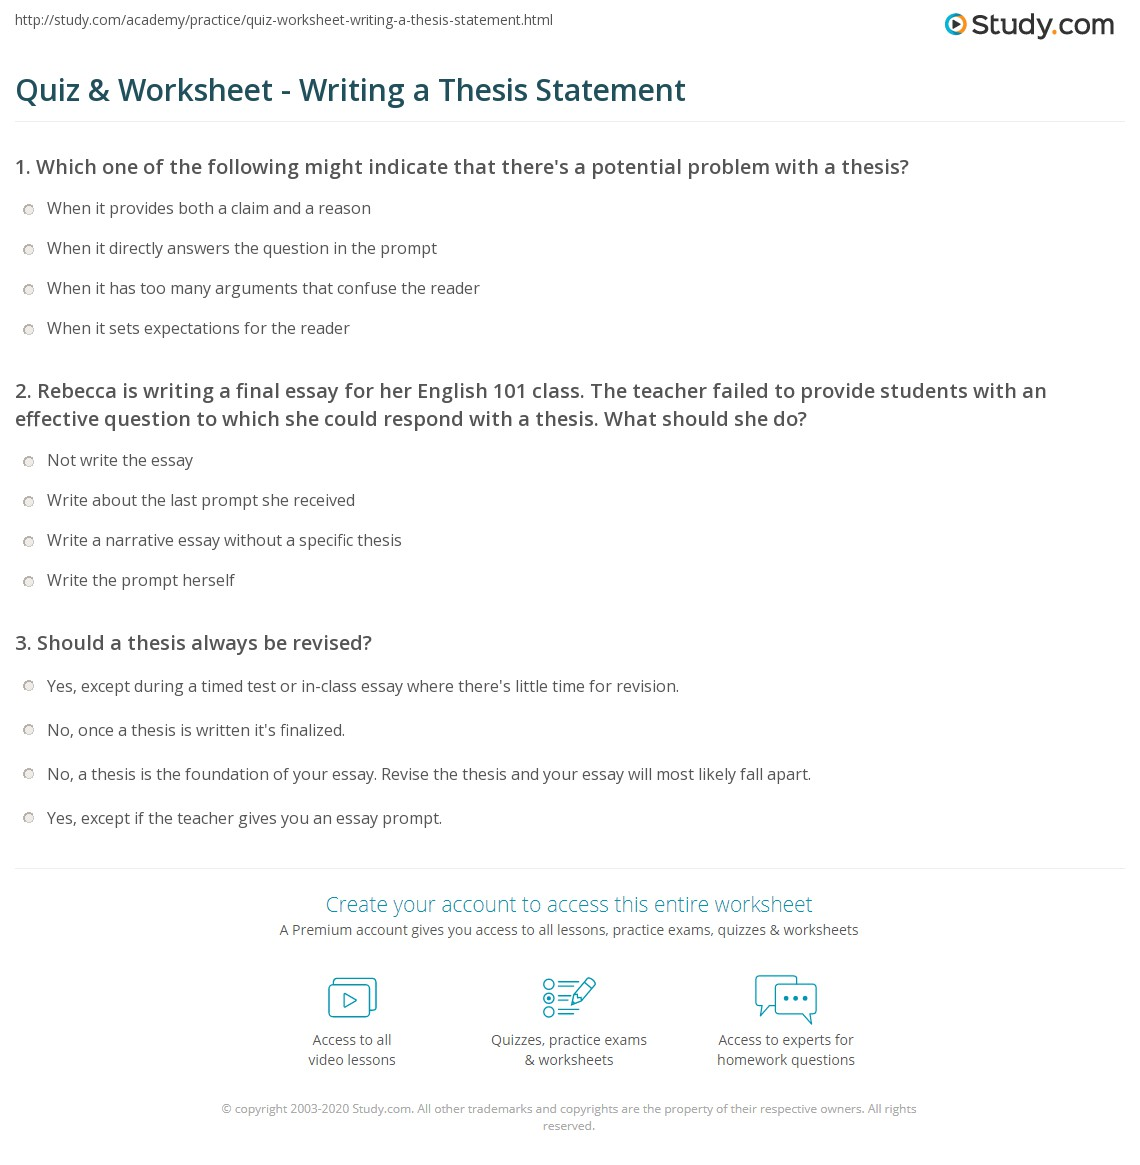 quiz  worksheet  writing a thesis statement  studycom rebecca is writing a final essay for her english  class the teacher  failed to provide students with an effective question to which she could  respond